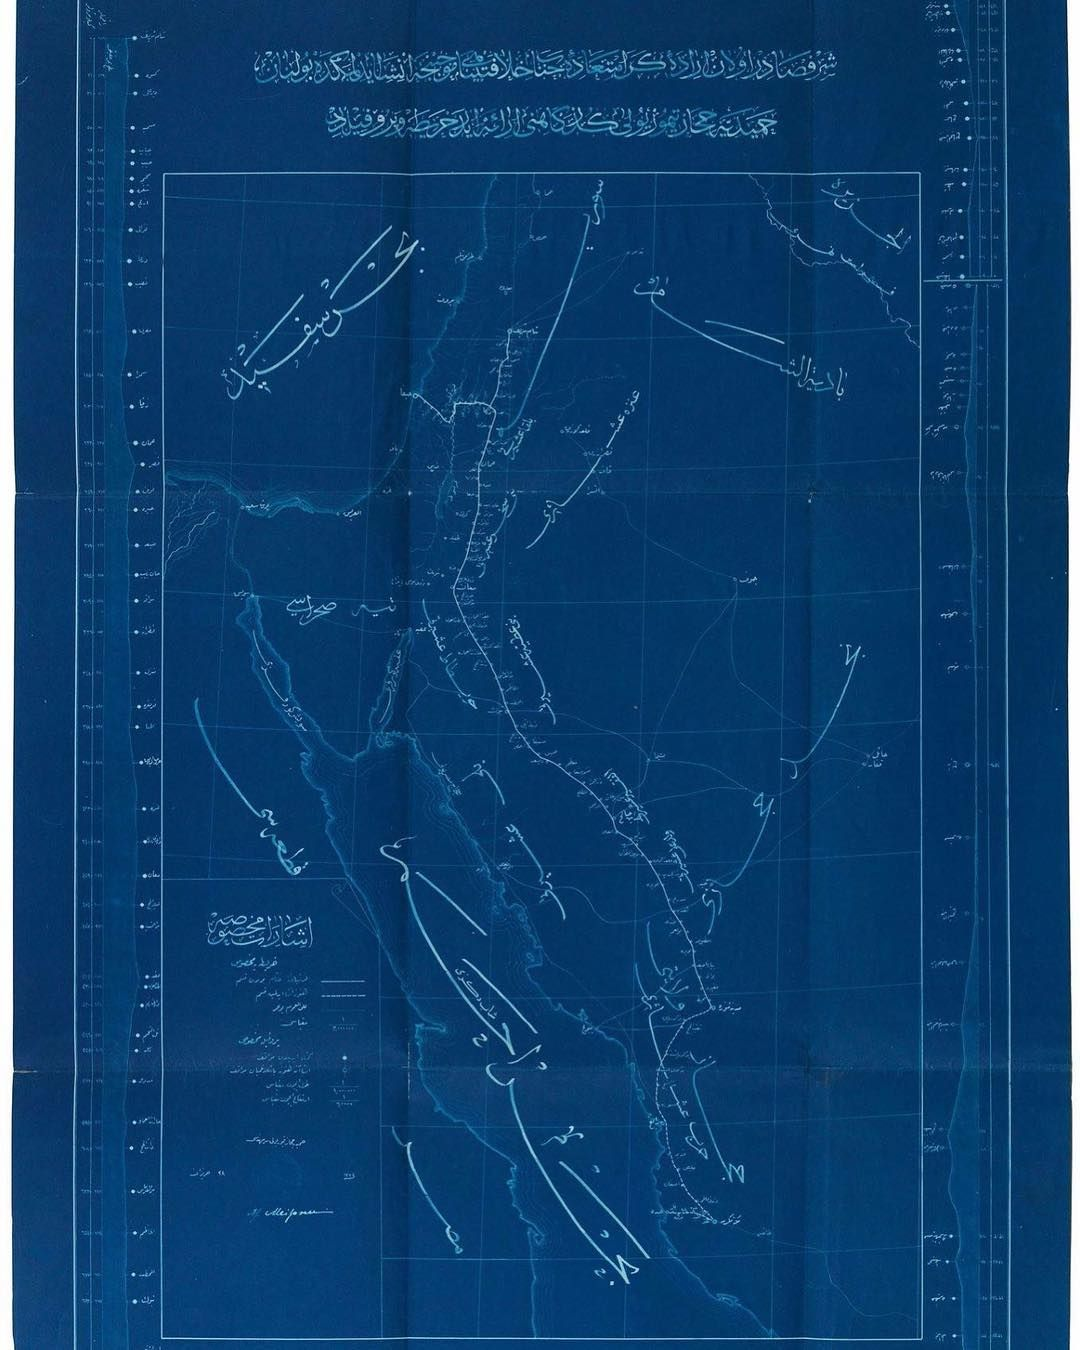 A Blueprint Map Of The Hijaz Railway Line Between Ottoman Damascus And Medina I A Blueprint Map Of The Hijaz Railway Li Blueprints Map Historical Objects